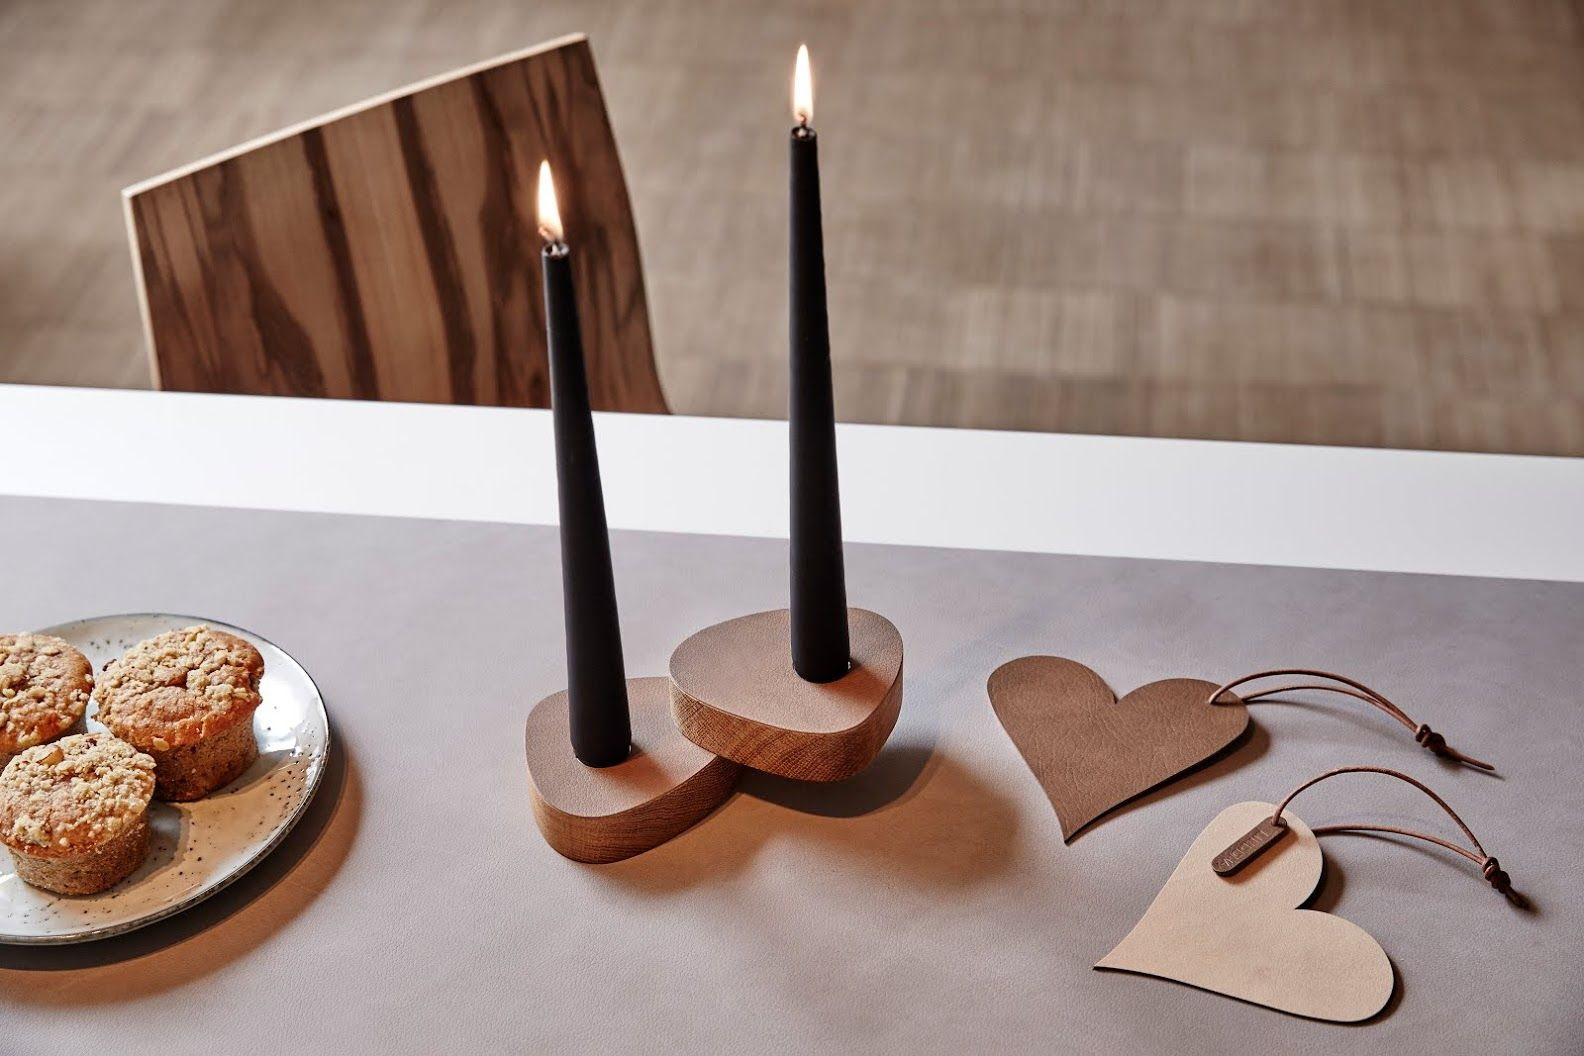 Cozy time with cookies on our TABLE RUNNER with CURVE CANDLE HOLDER and CHRISTMAS HANGERS. #brown #linddna